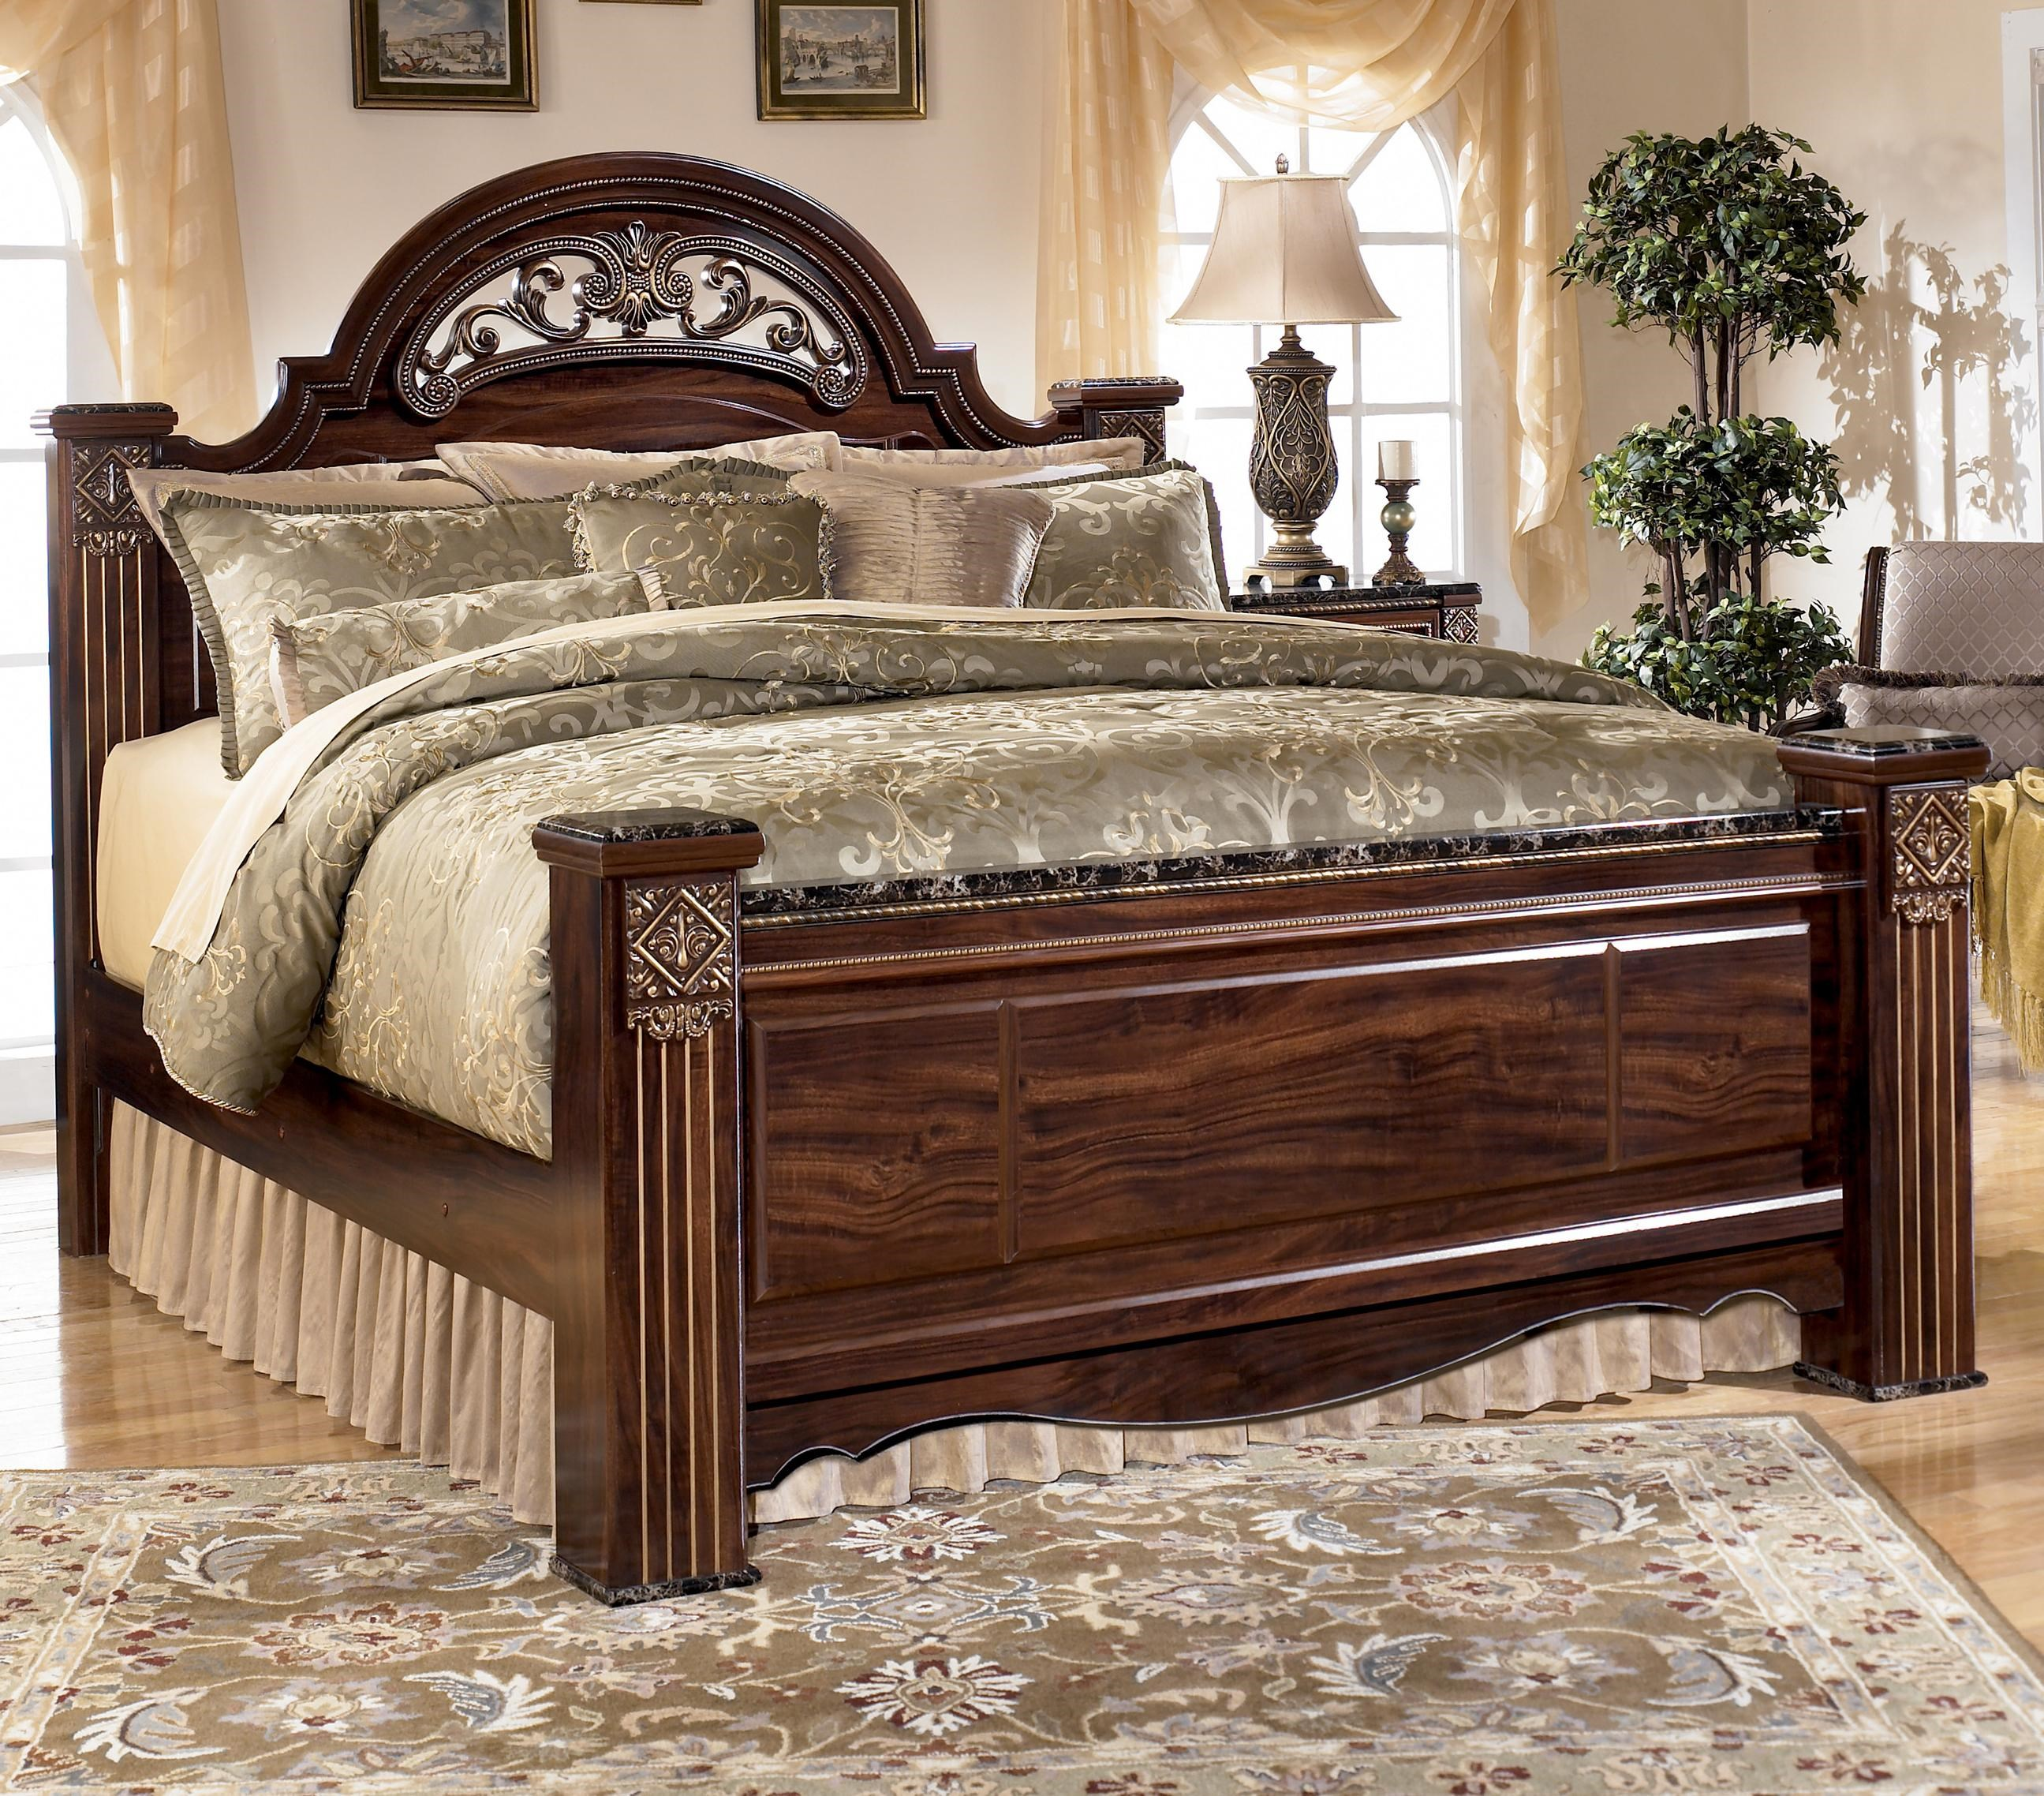 Signature Design by Ashley Gabriela King Poster Bed